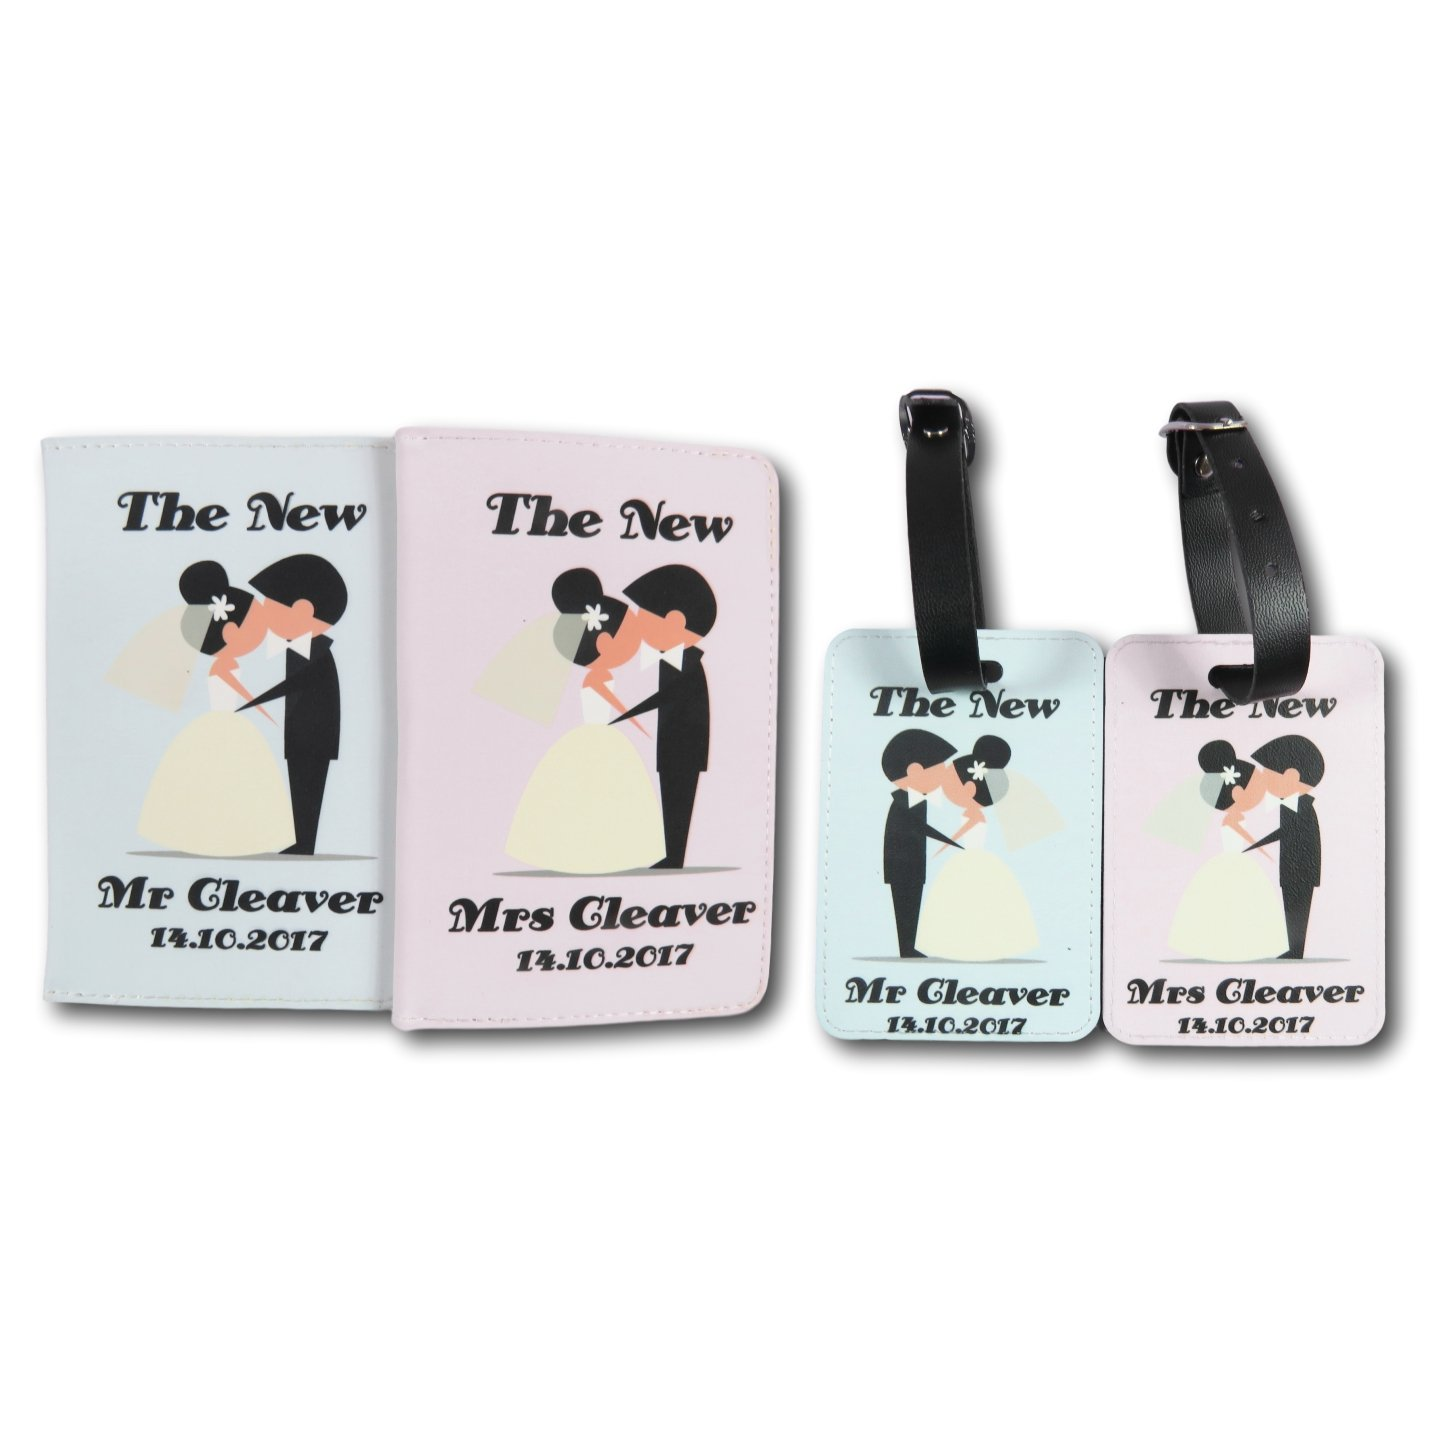 Wedding Mr & Mrs Personalised Passport Covers and luggage tag set Travel Gift Travel Gift Idea Custom passport holder World Travel Accessory Gift for traveller Wedding Gift Just Married Honeymoon